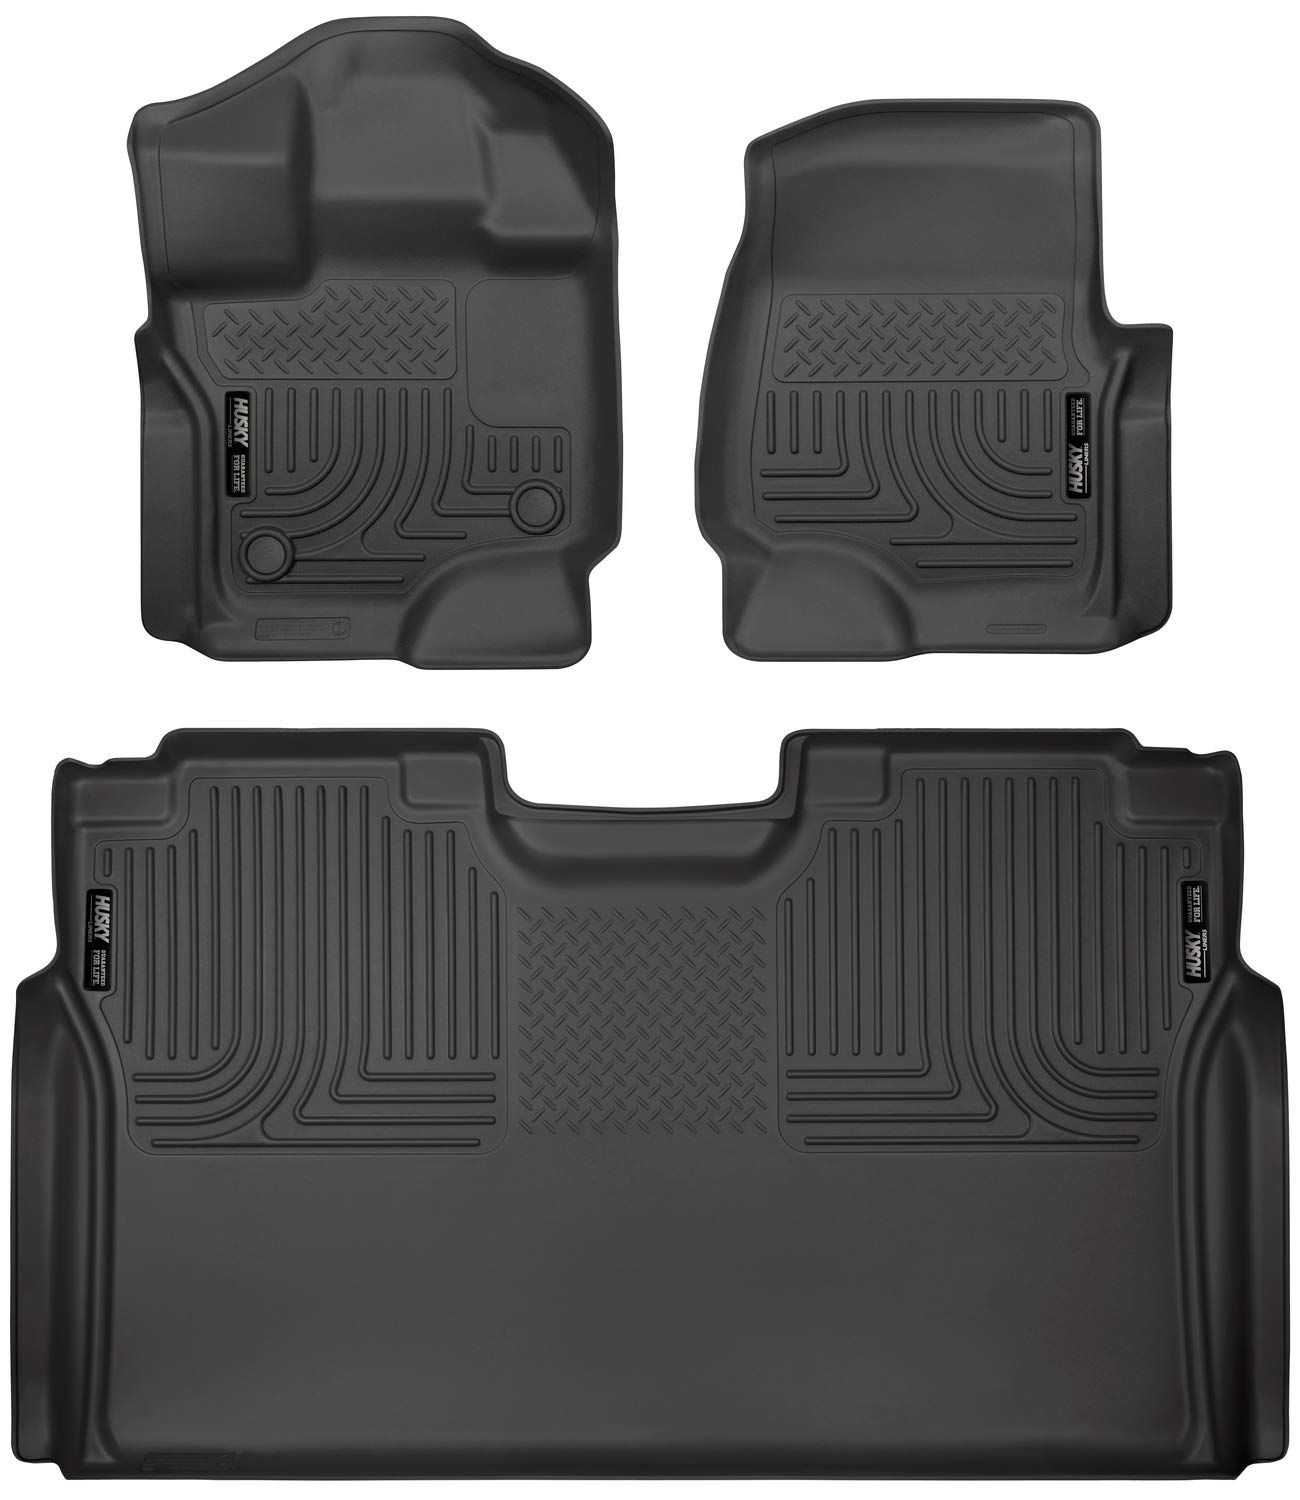 Husky Liners 94041 Weatherbeater Combo Set Black Front and 2nd Seat Floor Liners Fits 2015-19 Ford F-150 SuperCrew by Husky Liners